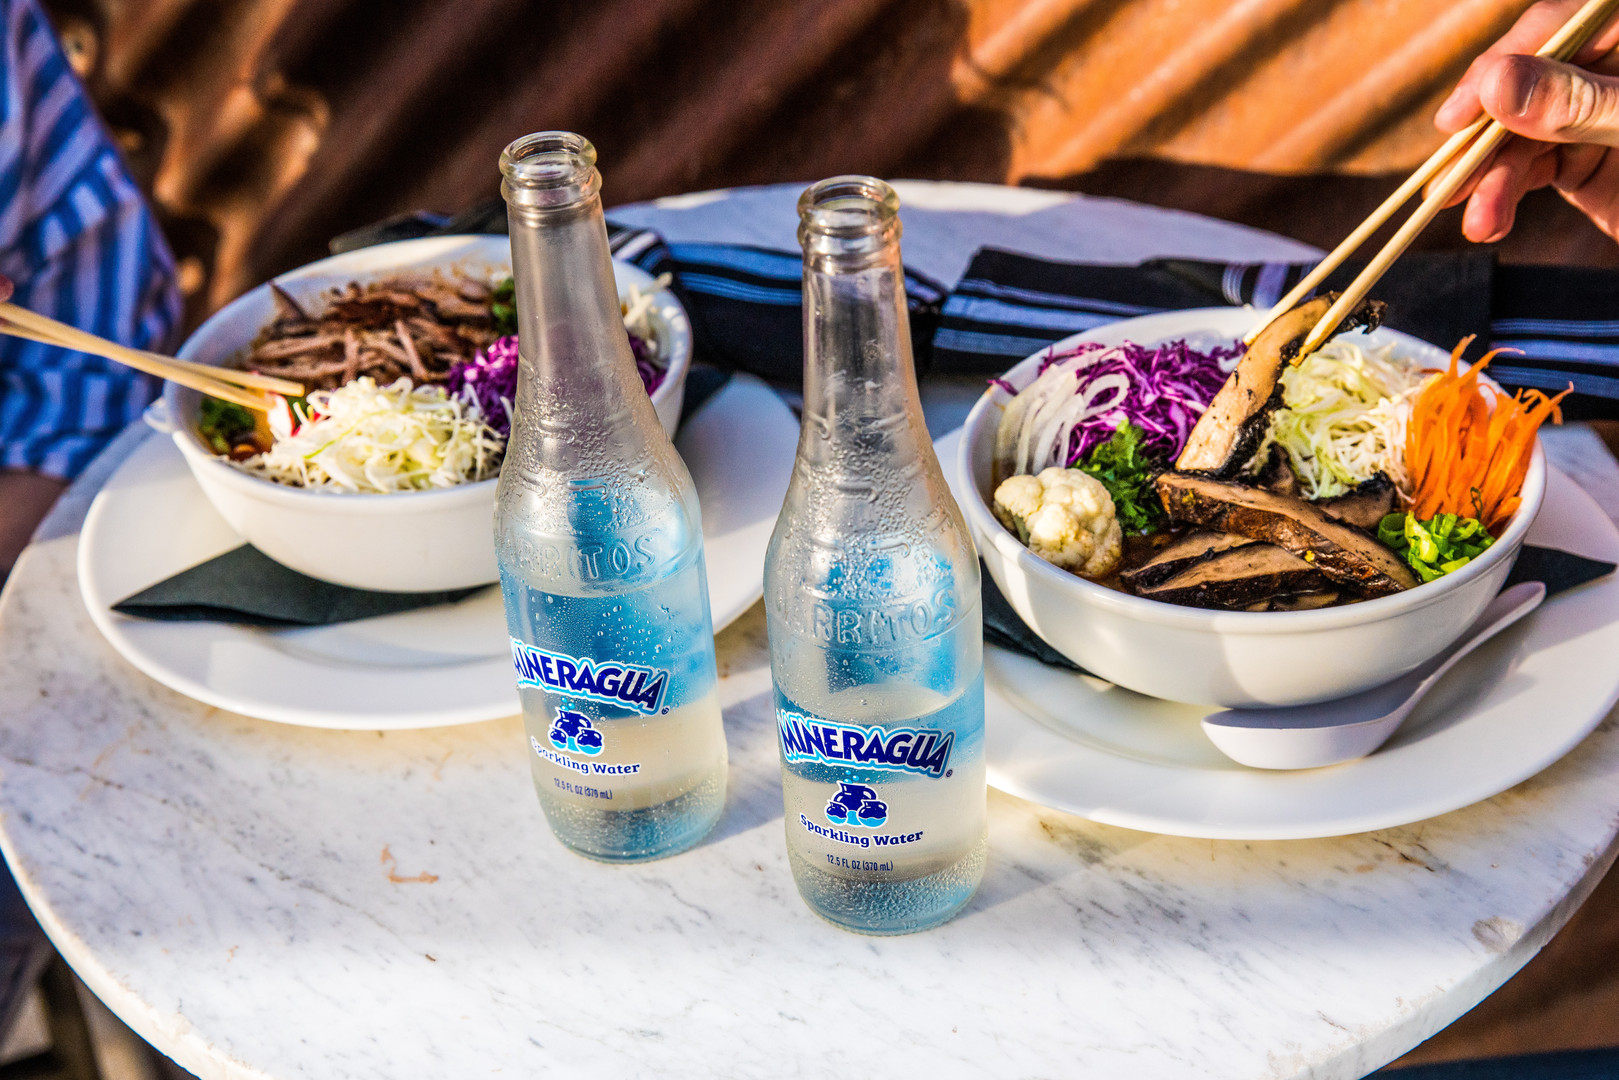 Image by Mineragua Sparkling Water